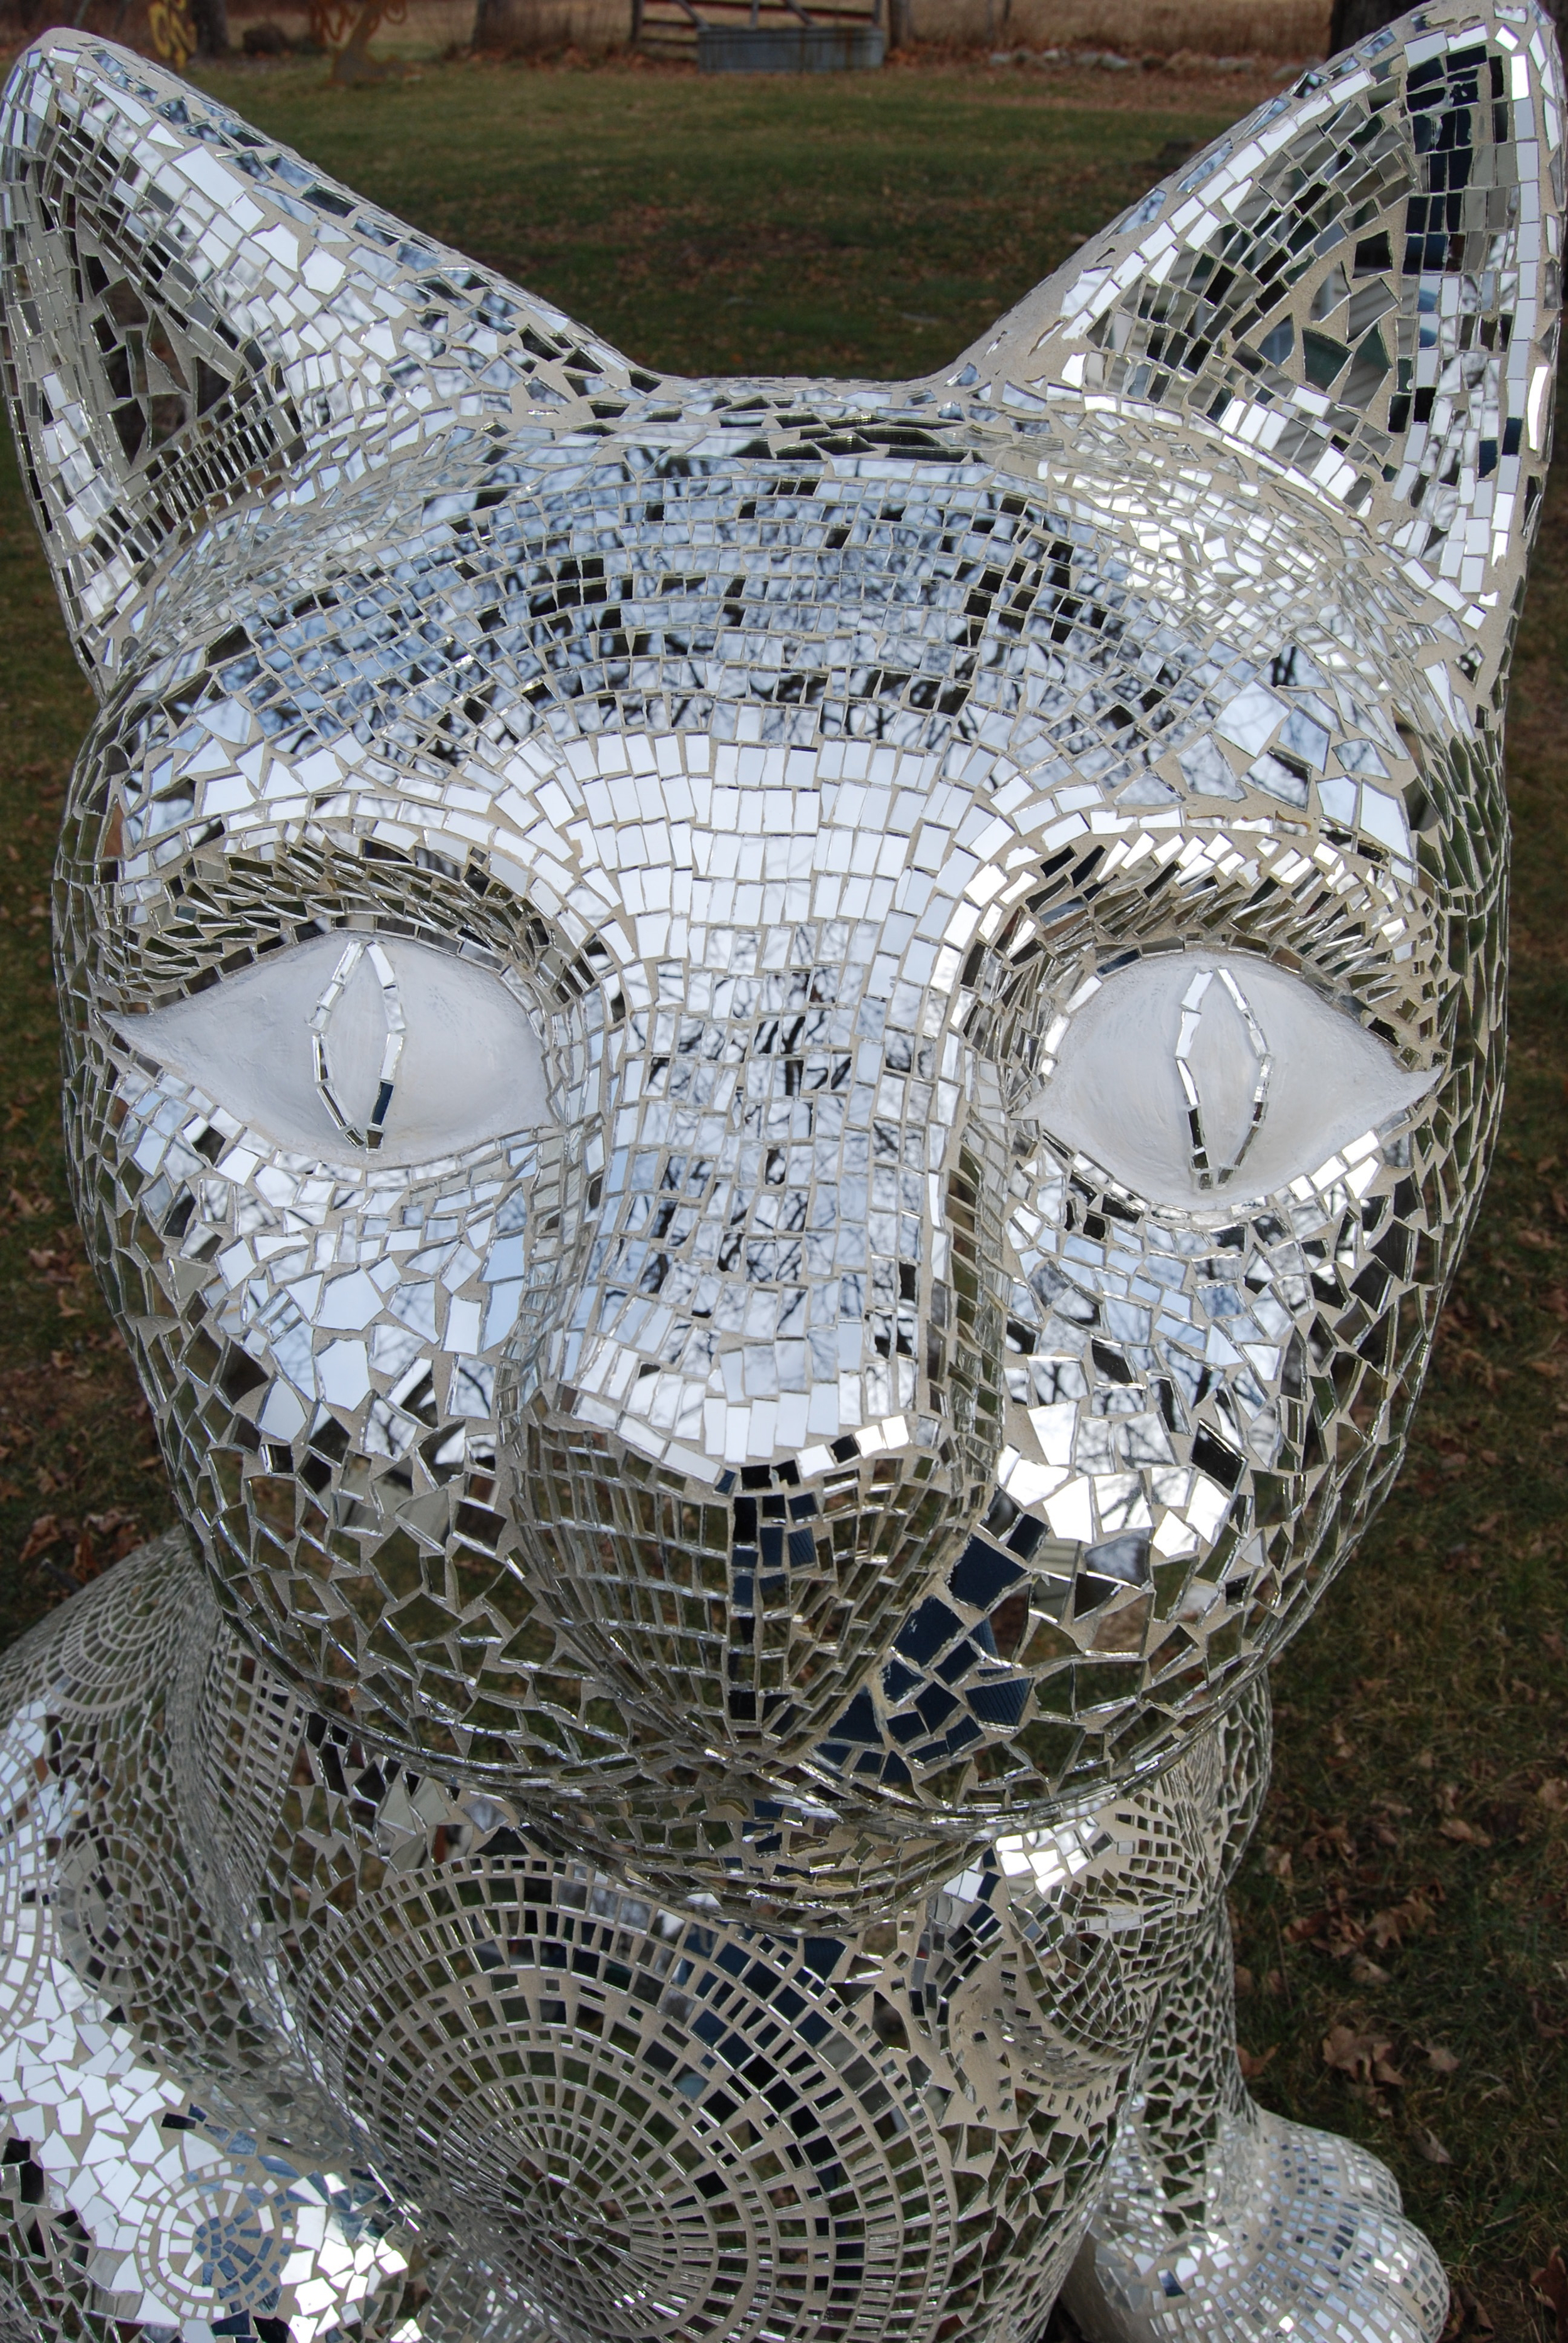 """Chloe"" Hand cut glass mirror mosaic by Shelita Birchett Benash. 5'H x 2.5W x 4'L. 2011."